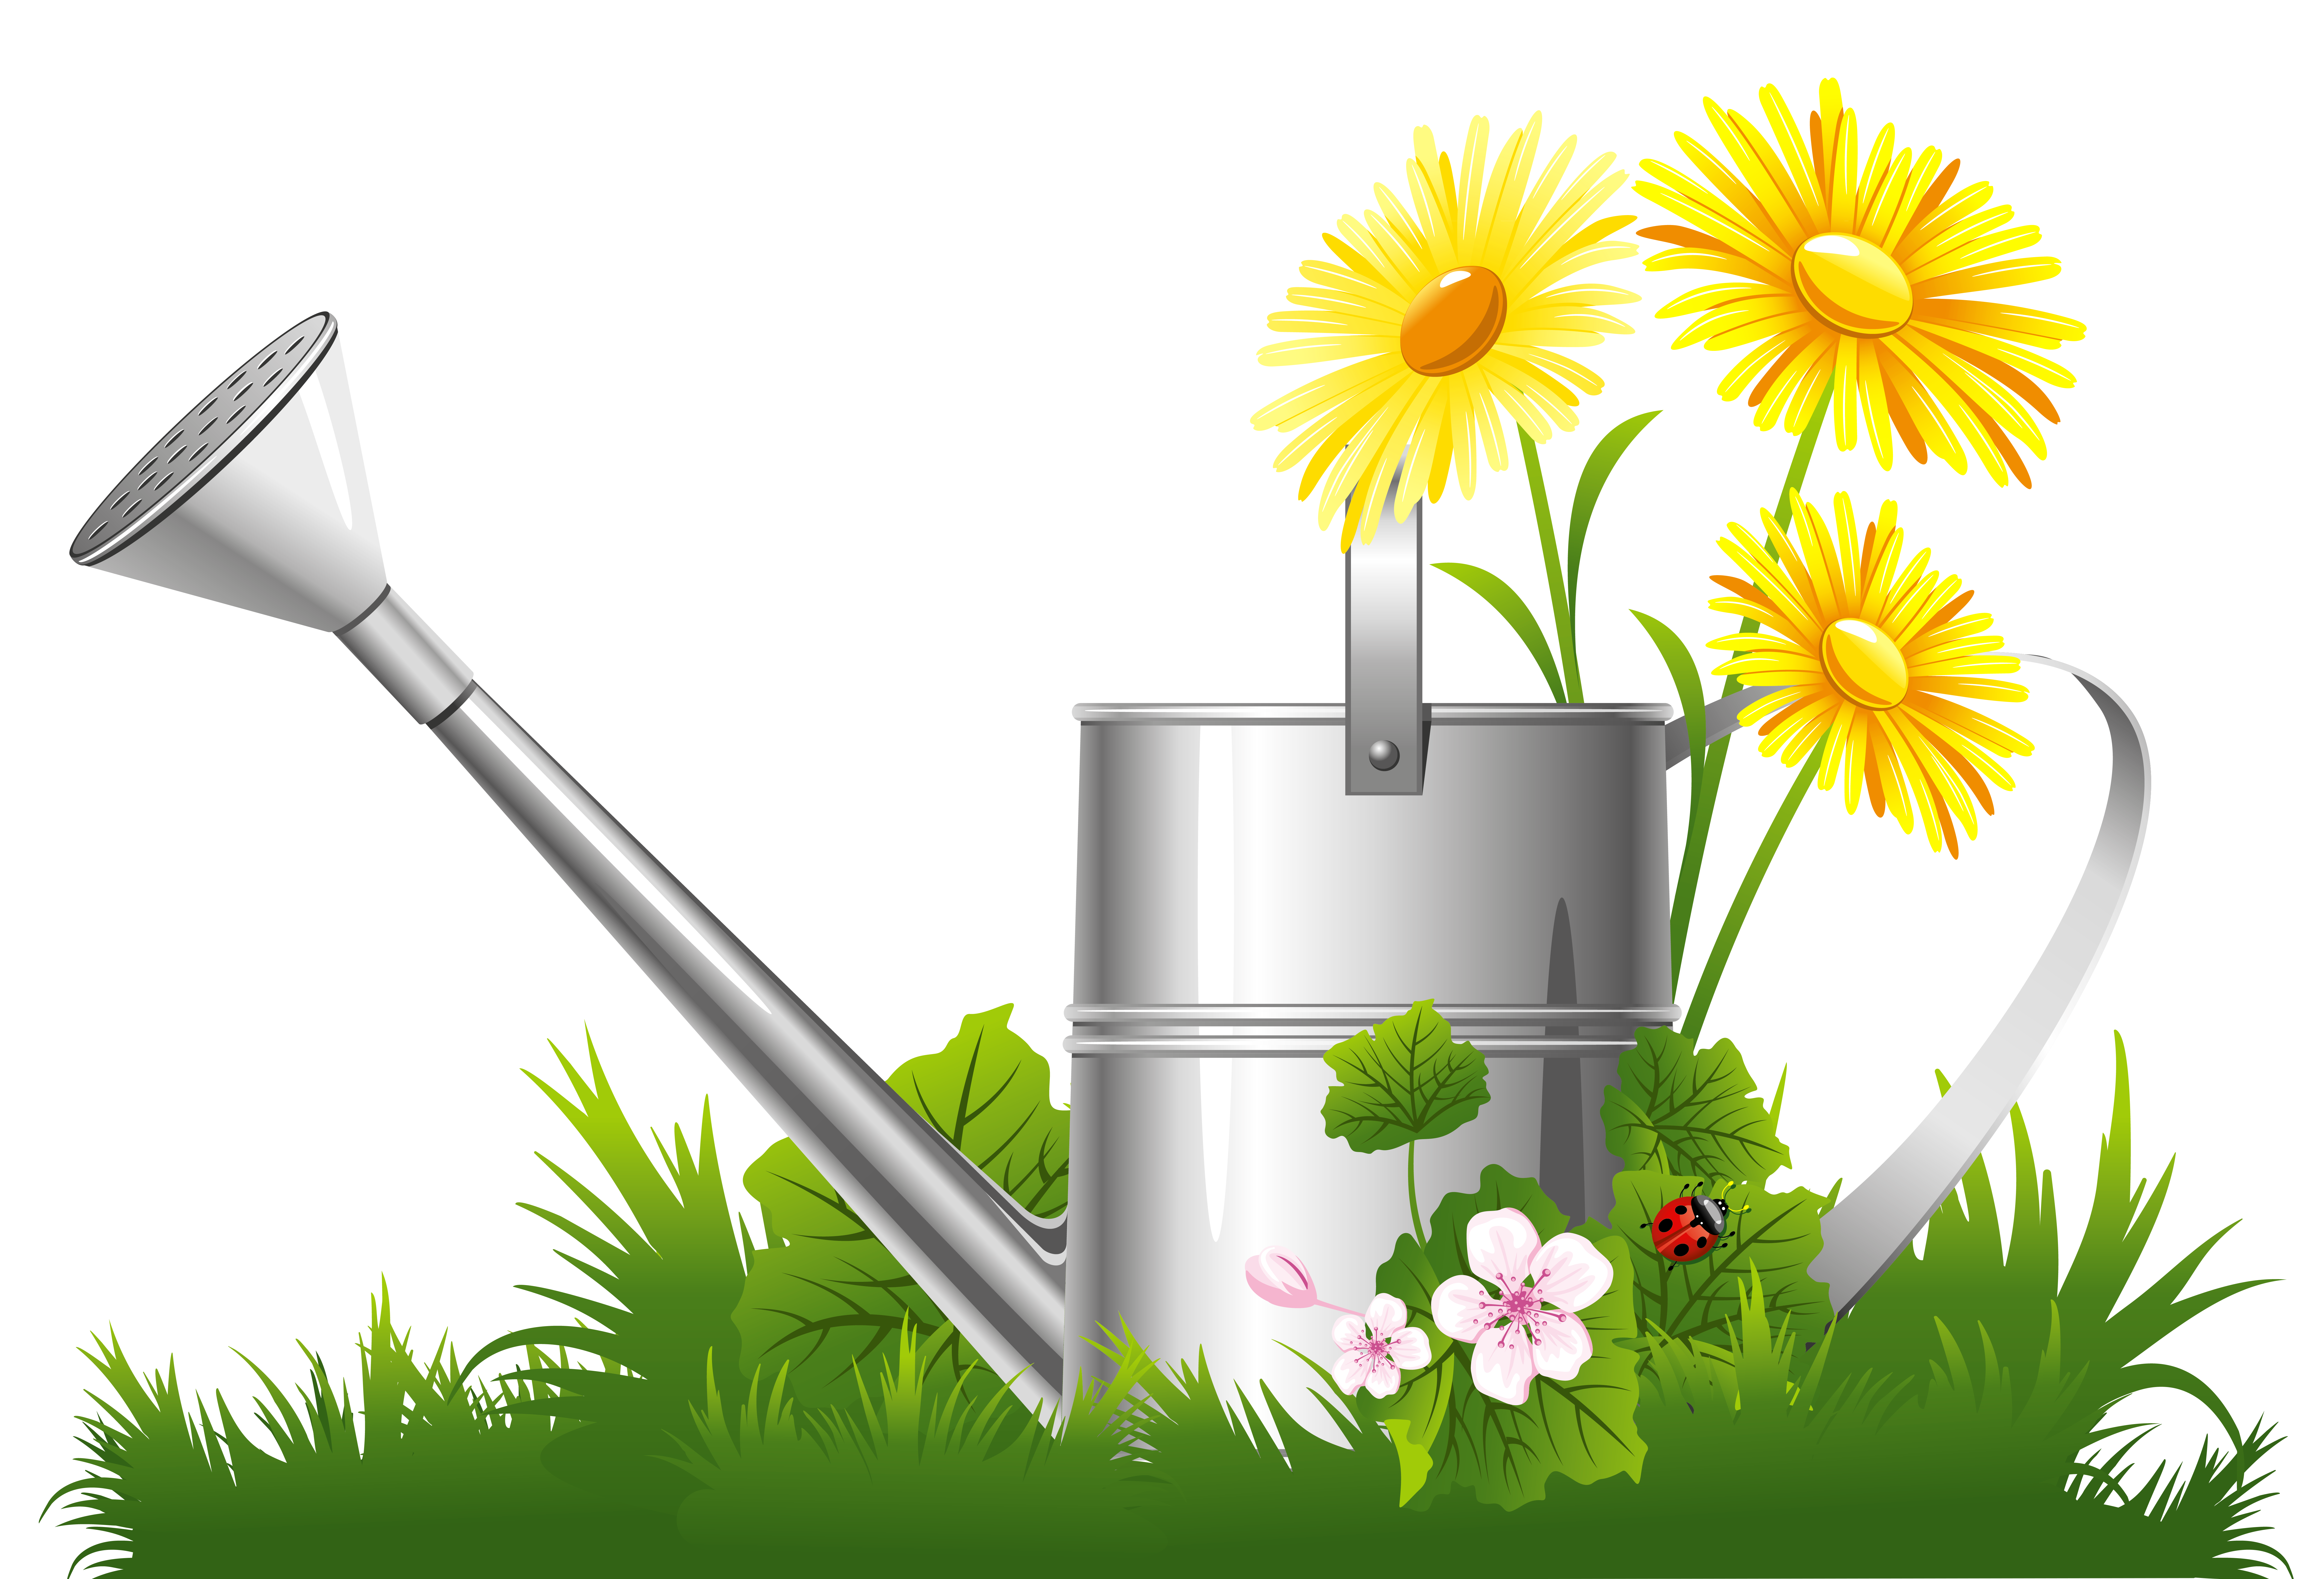 Nature clipart spring. Decoration with water can